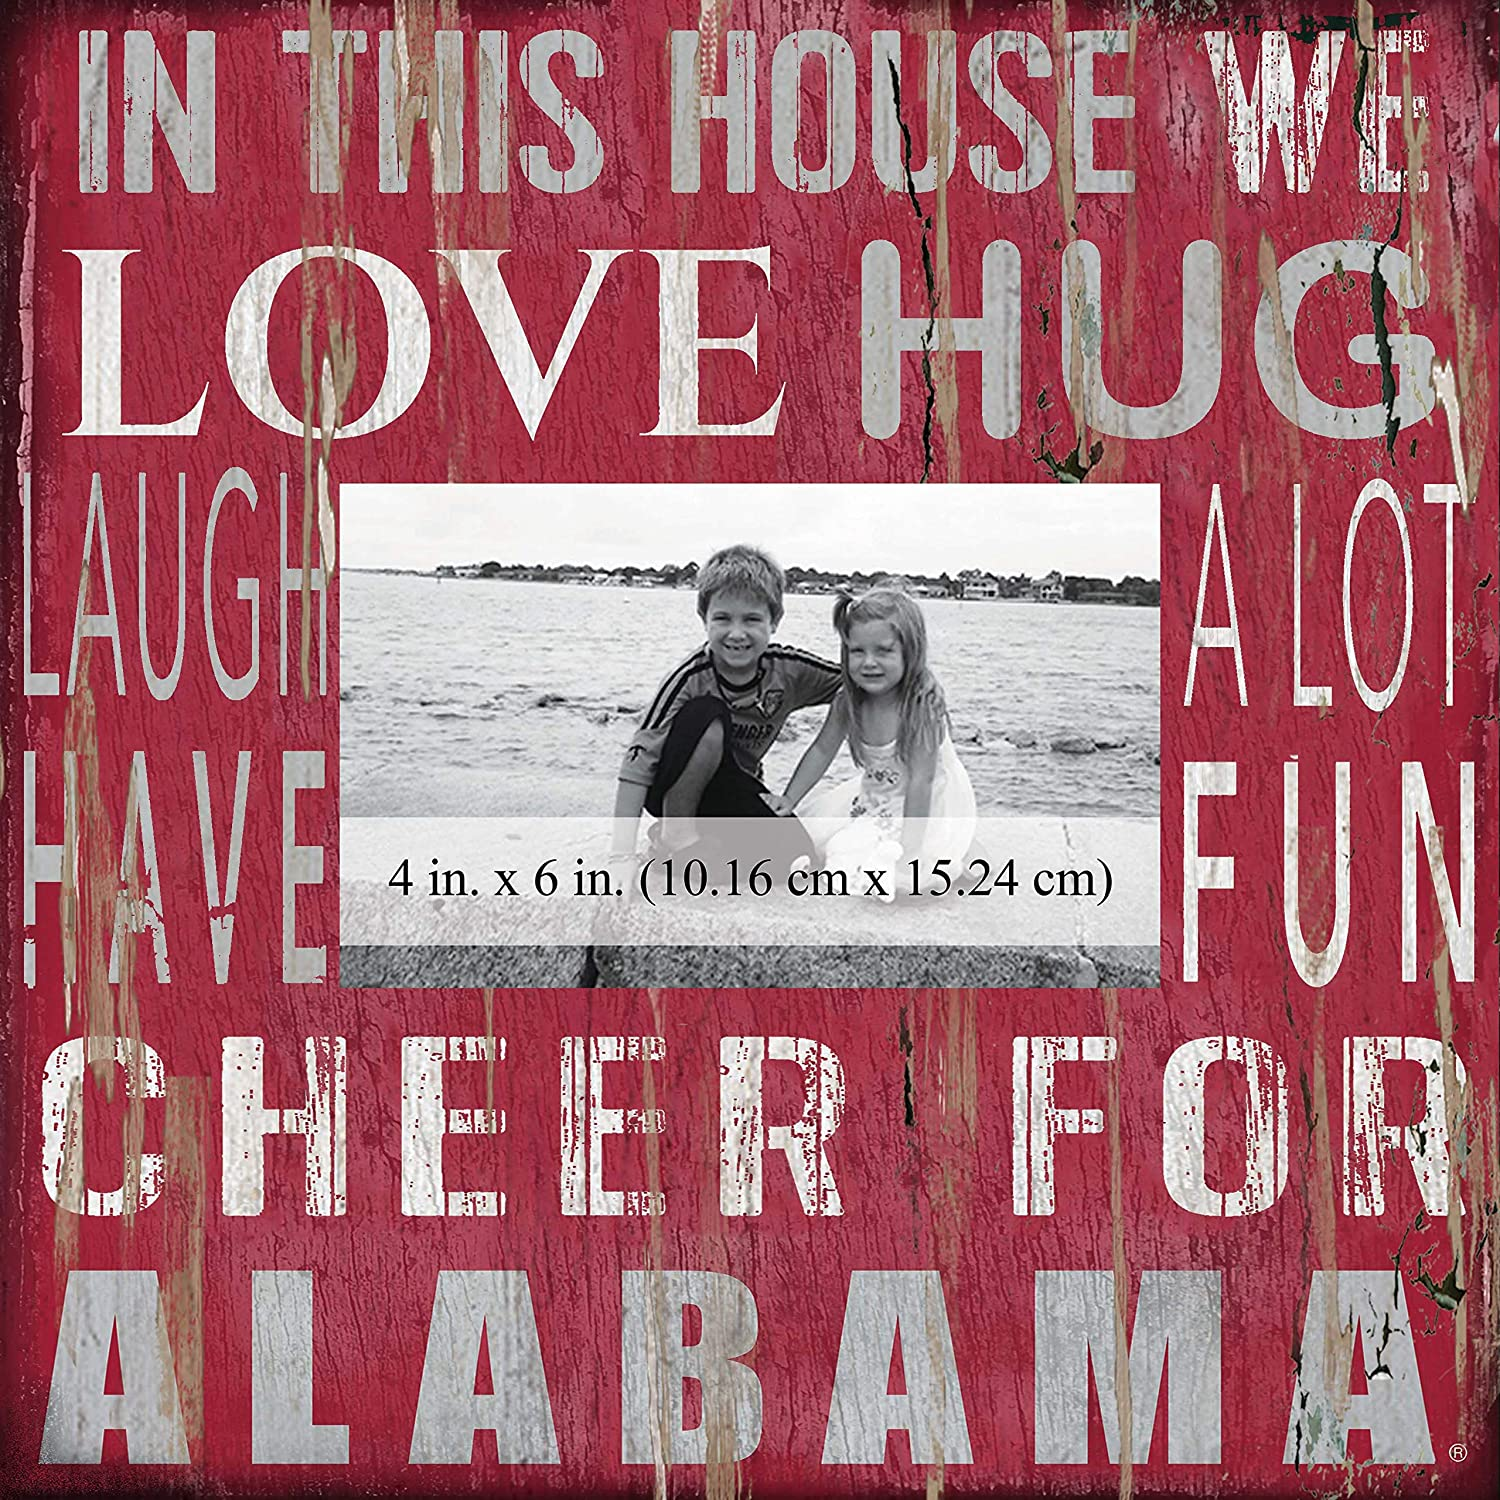 Fan Creations NCAA Alabama Crimson Tide in This House 4 in. x 6 in. Wood Photo Frame